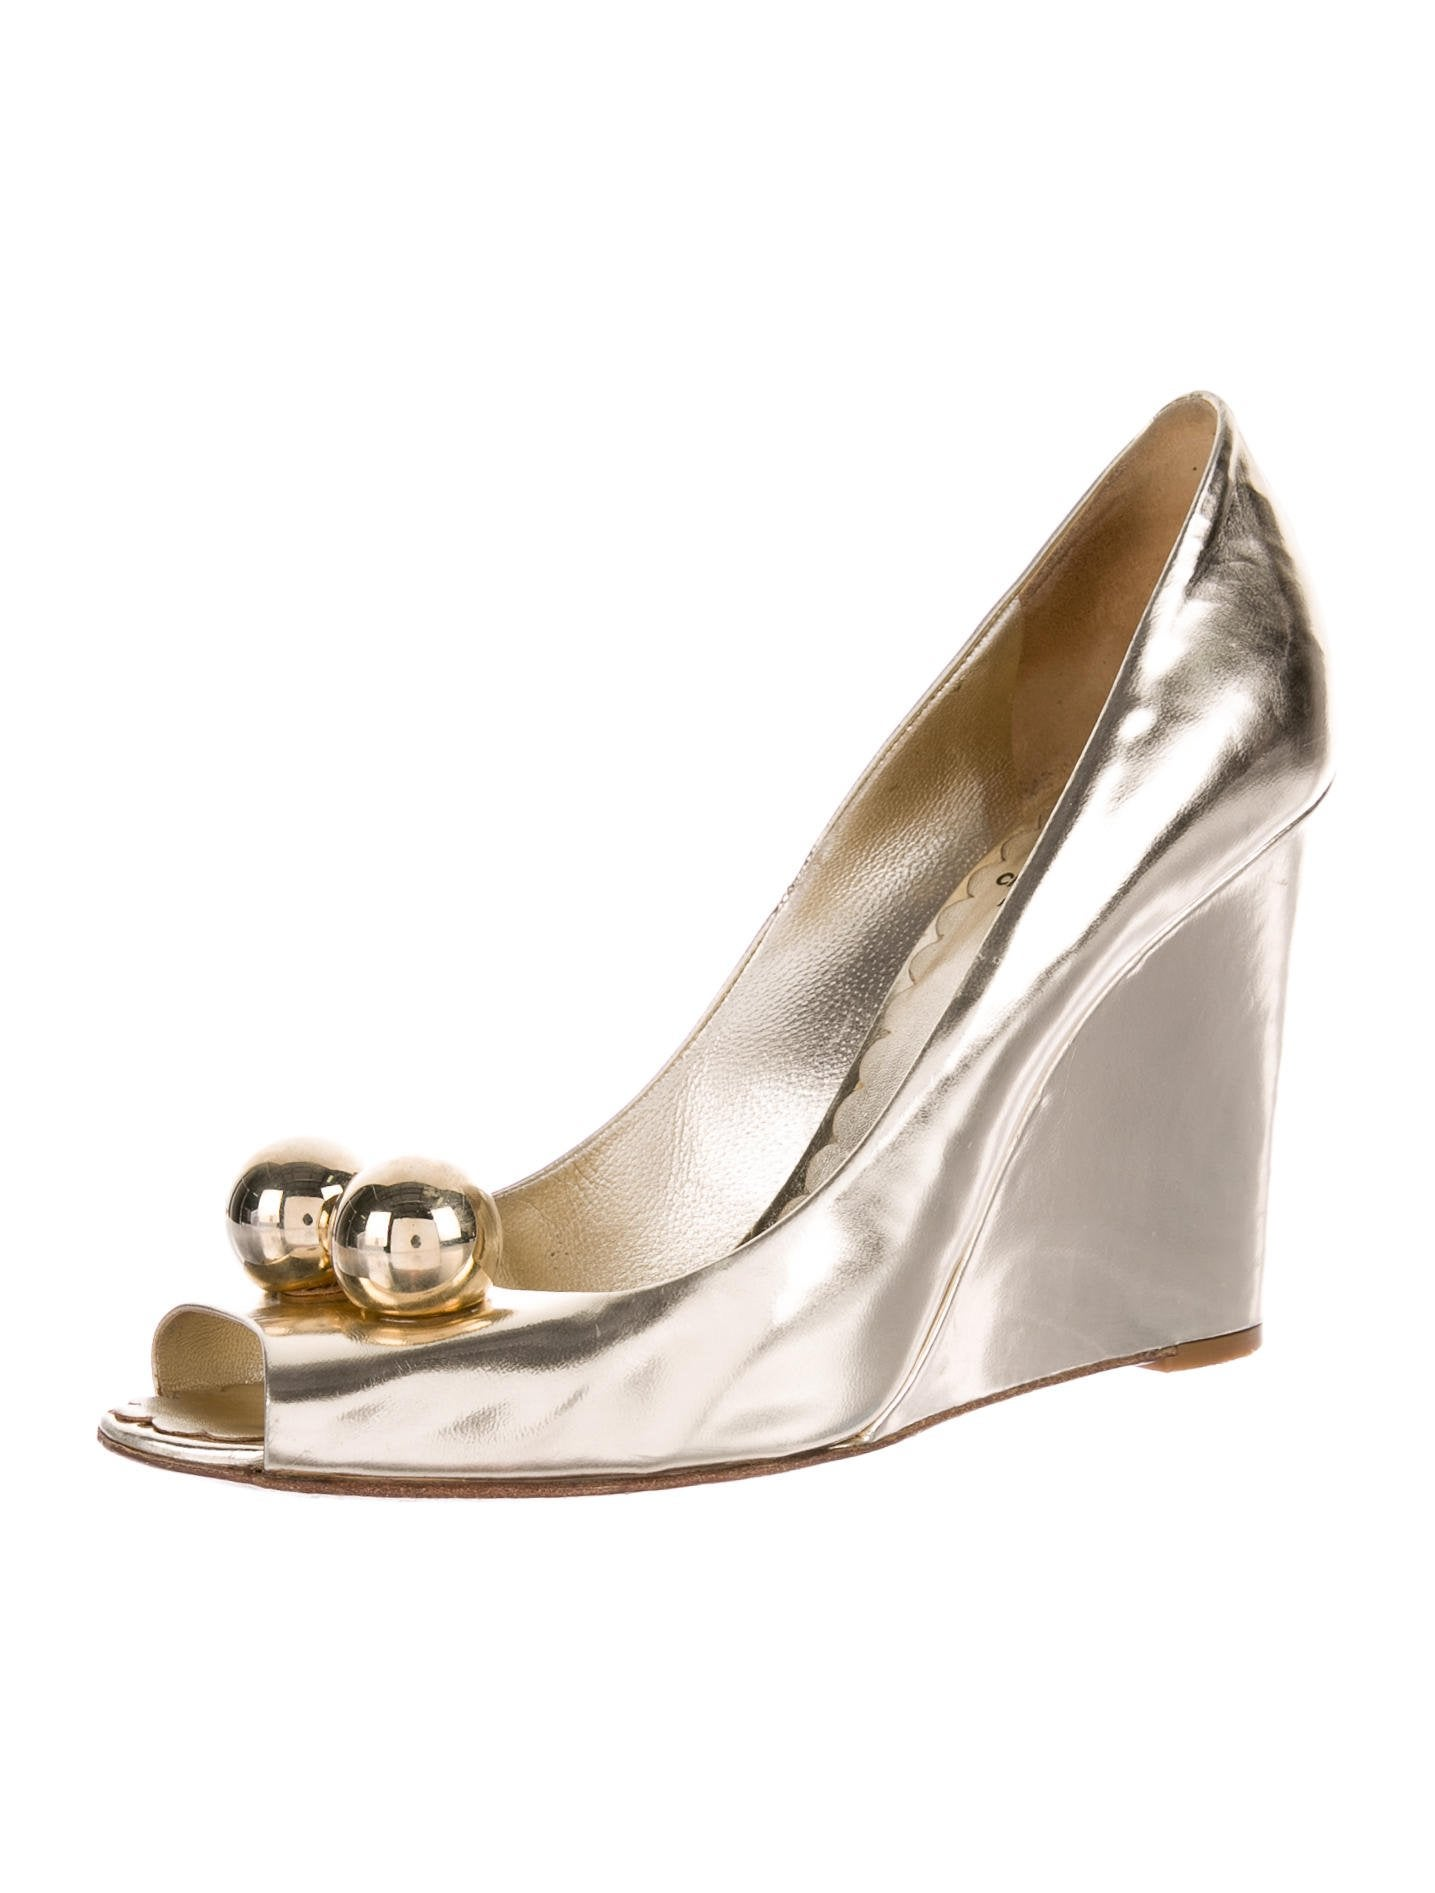 best seller Moschino Cheap and Chic Metallic Peep-Toe Wedges perfect online hk3eStGnJ